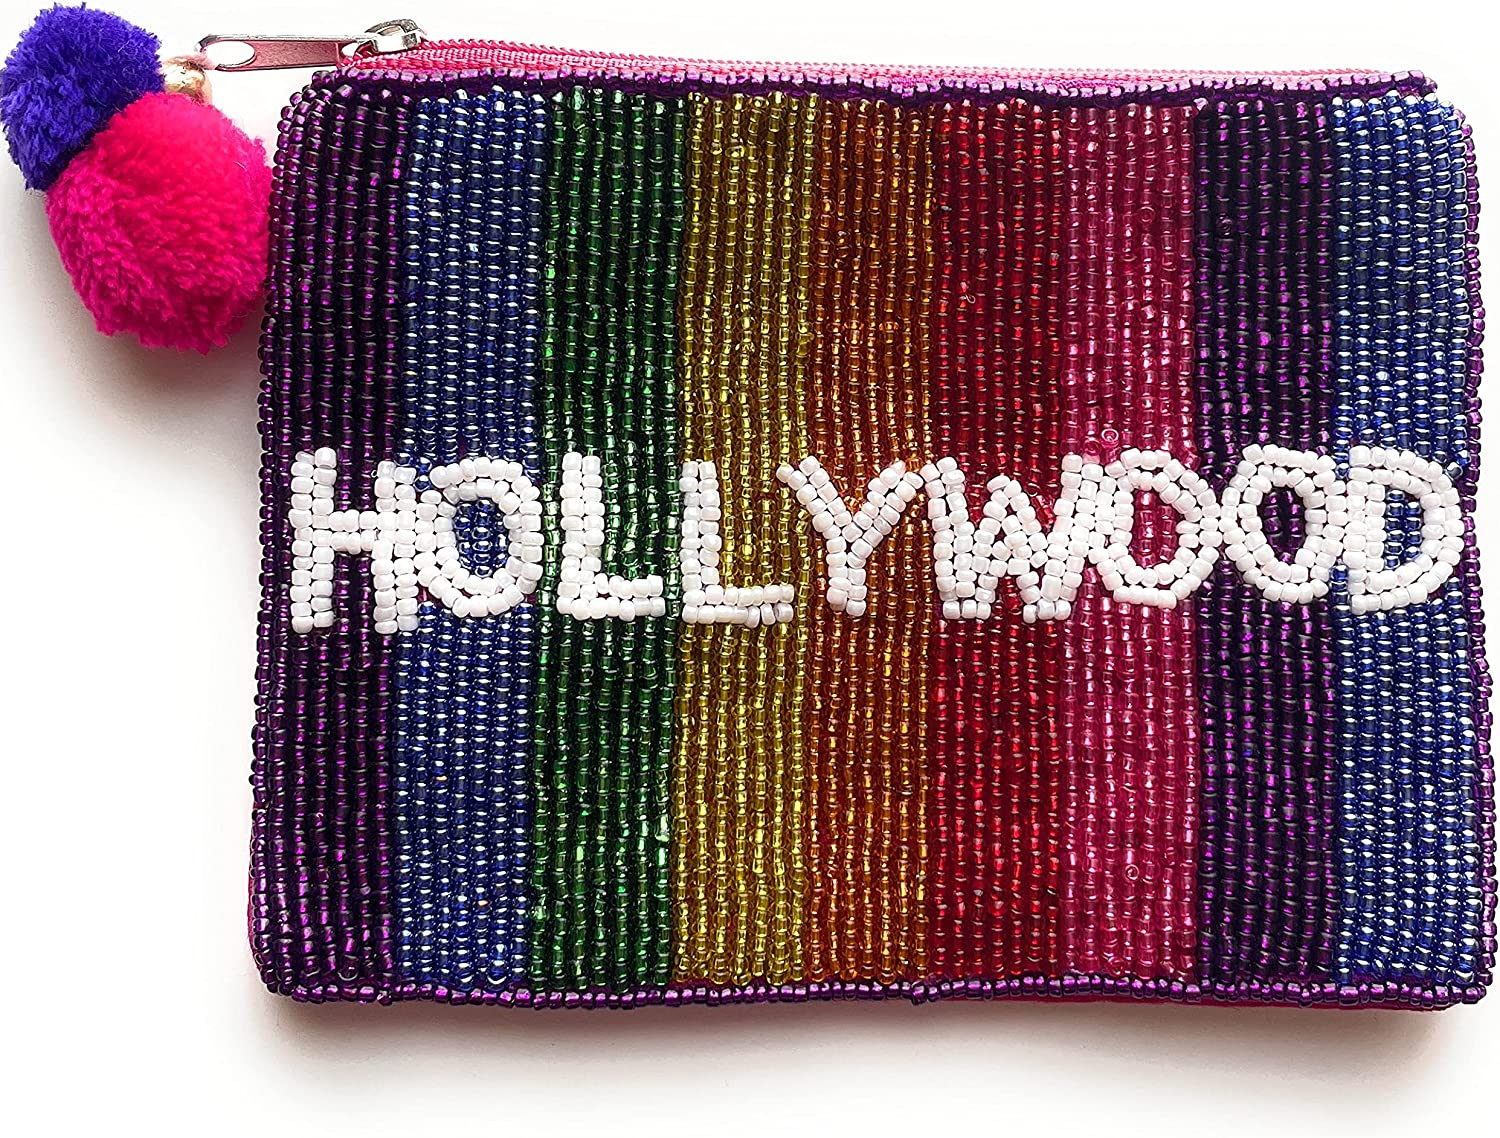 Hollywood Coin Purse Pouch, Coin Purse Pouch, Beaded Coin Purse, Cute Coin Purse, Beaded Purse, Summer Coin Purse, Best Friend Gift, Pouches, Boho bags, Wallets for her